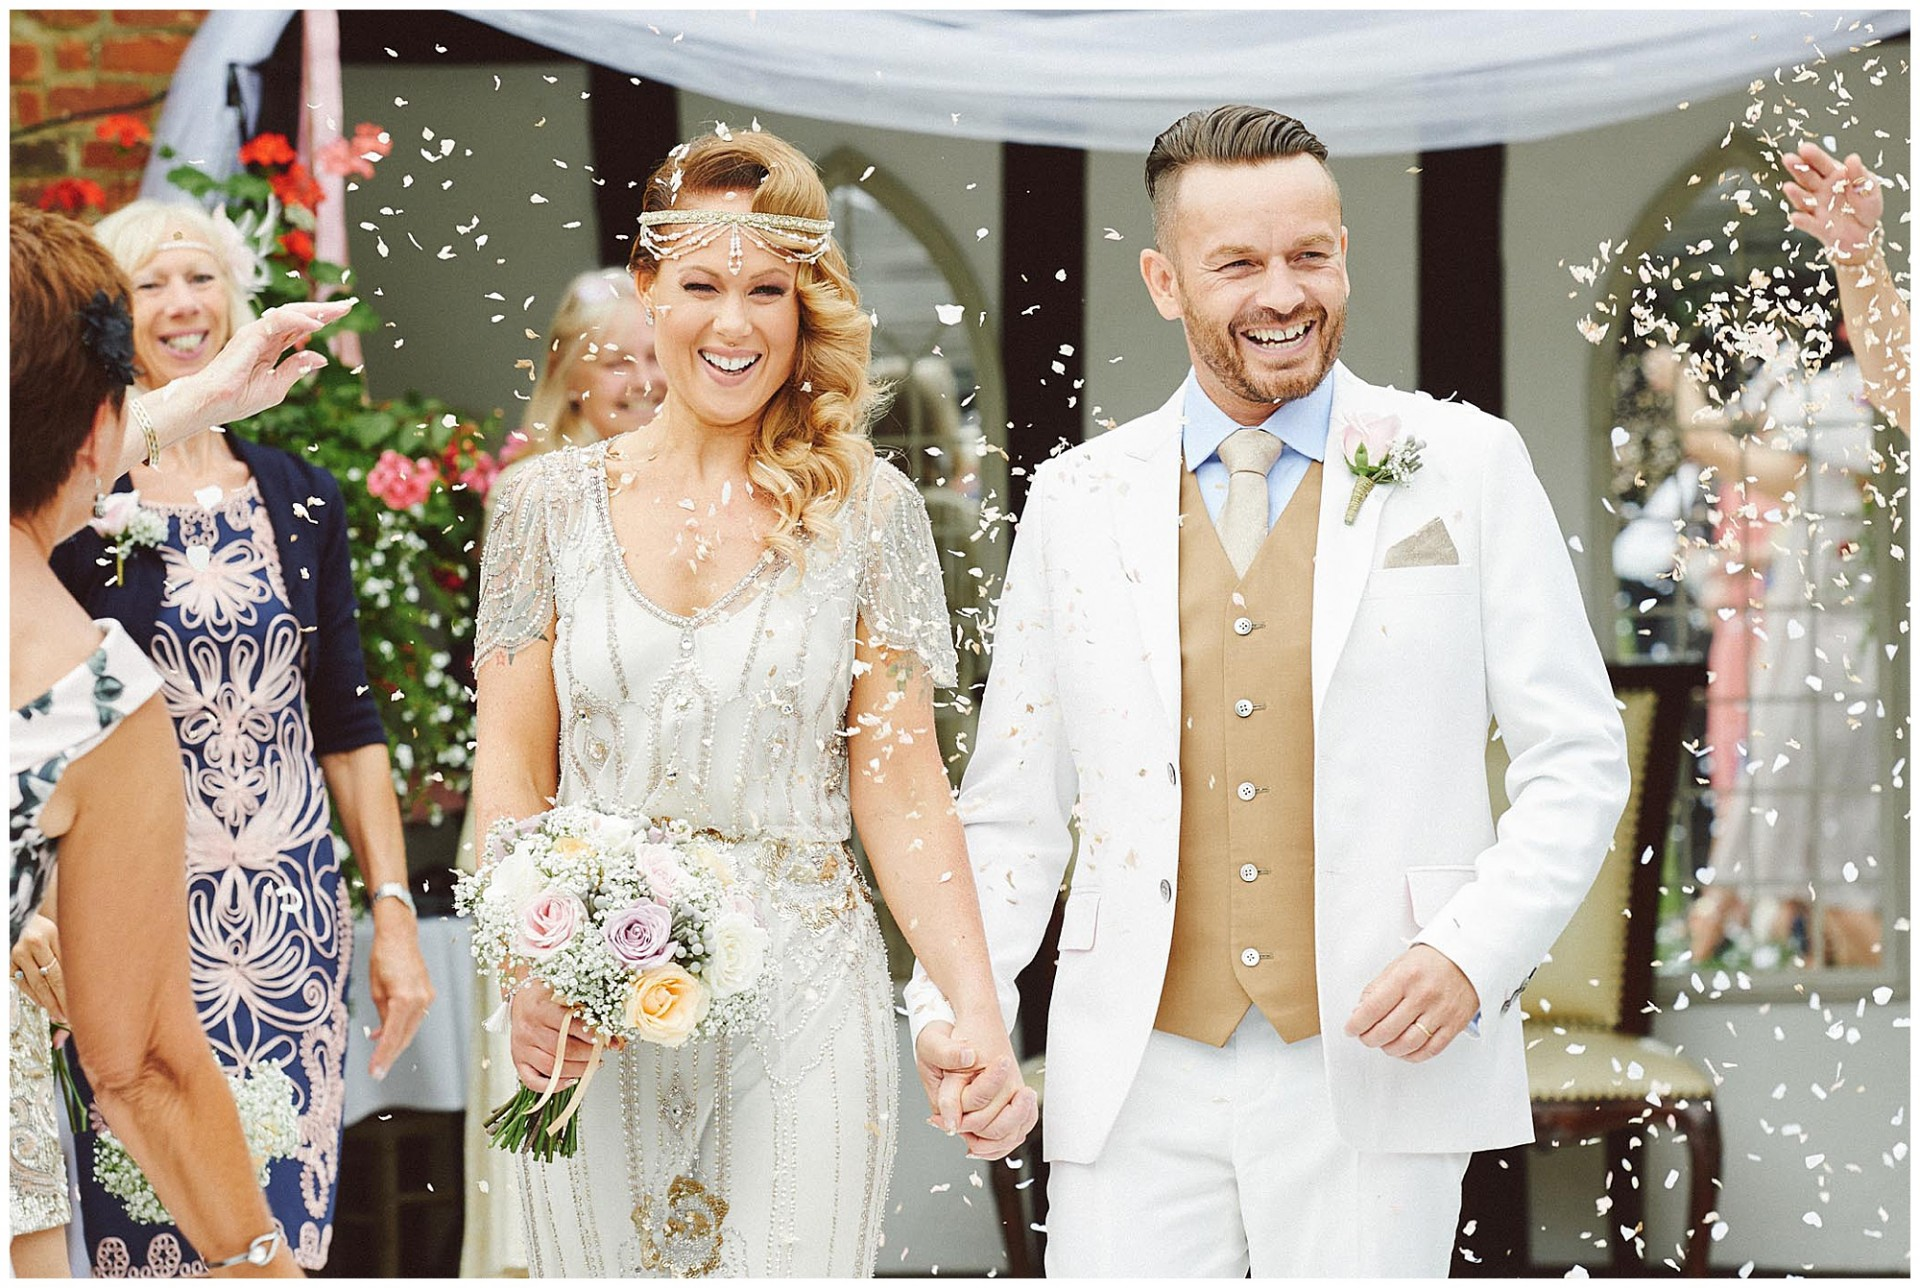 Happy wedding couple walking down outdoor aisle whilst confetti is thrown over them.